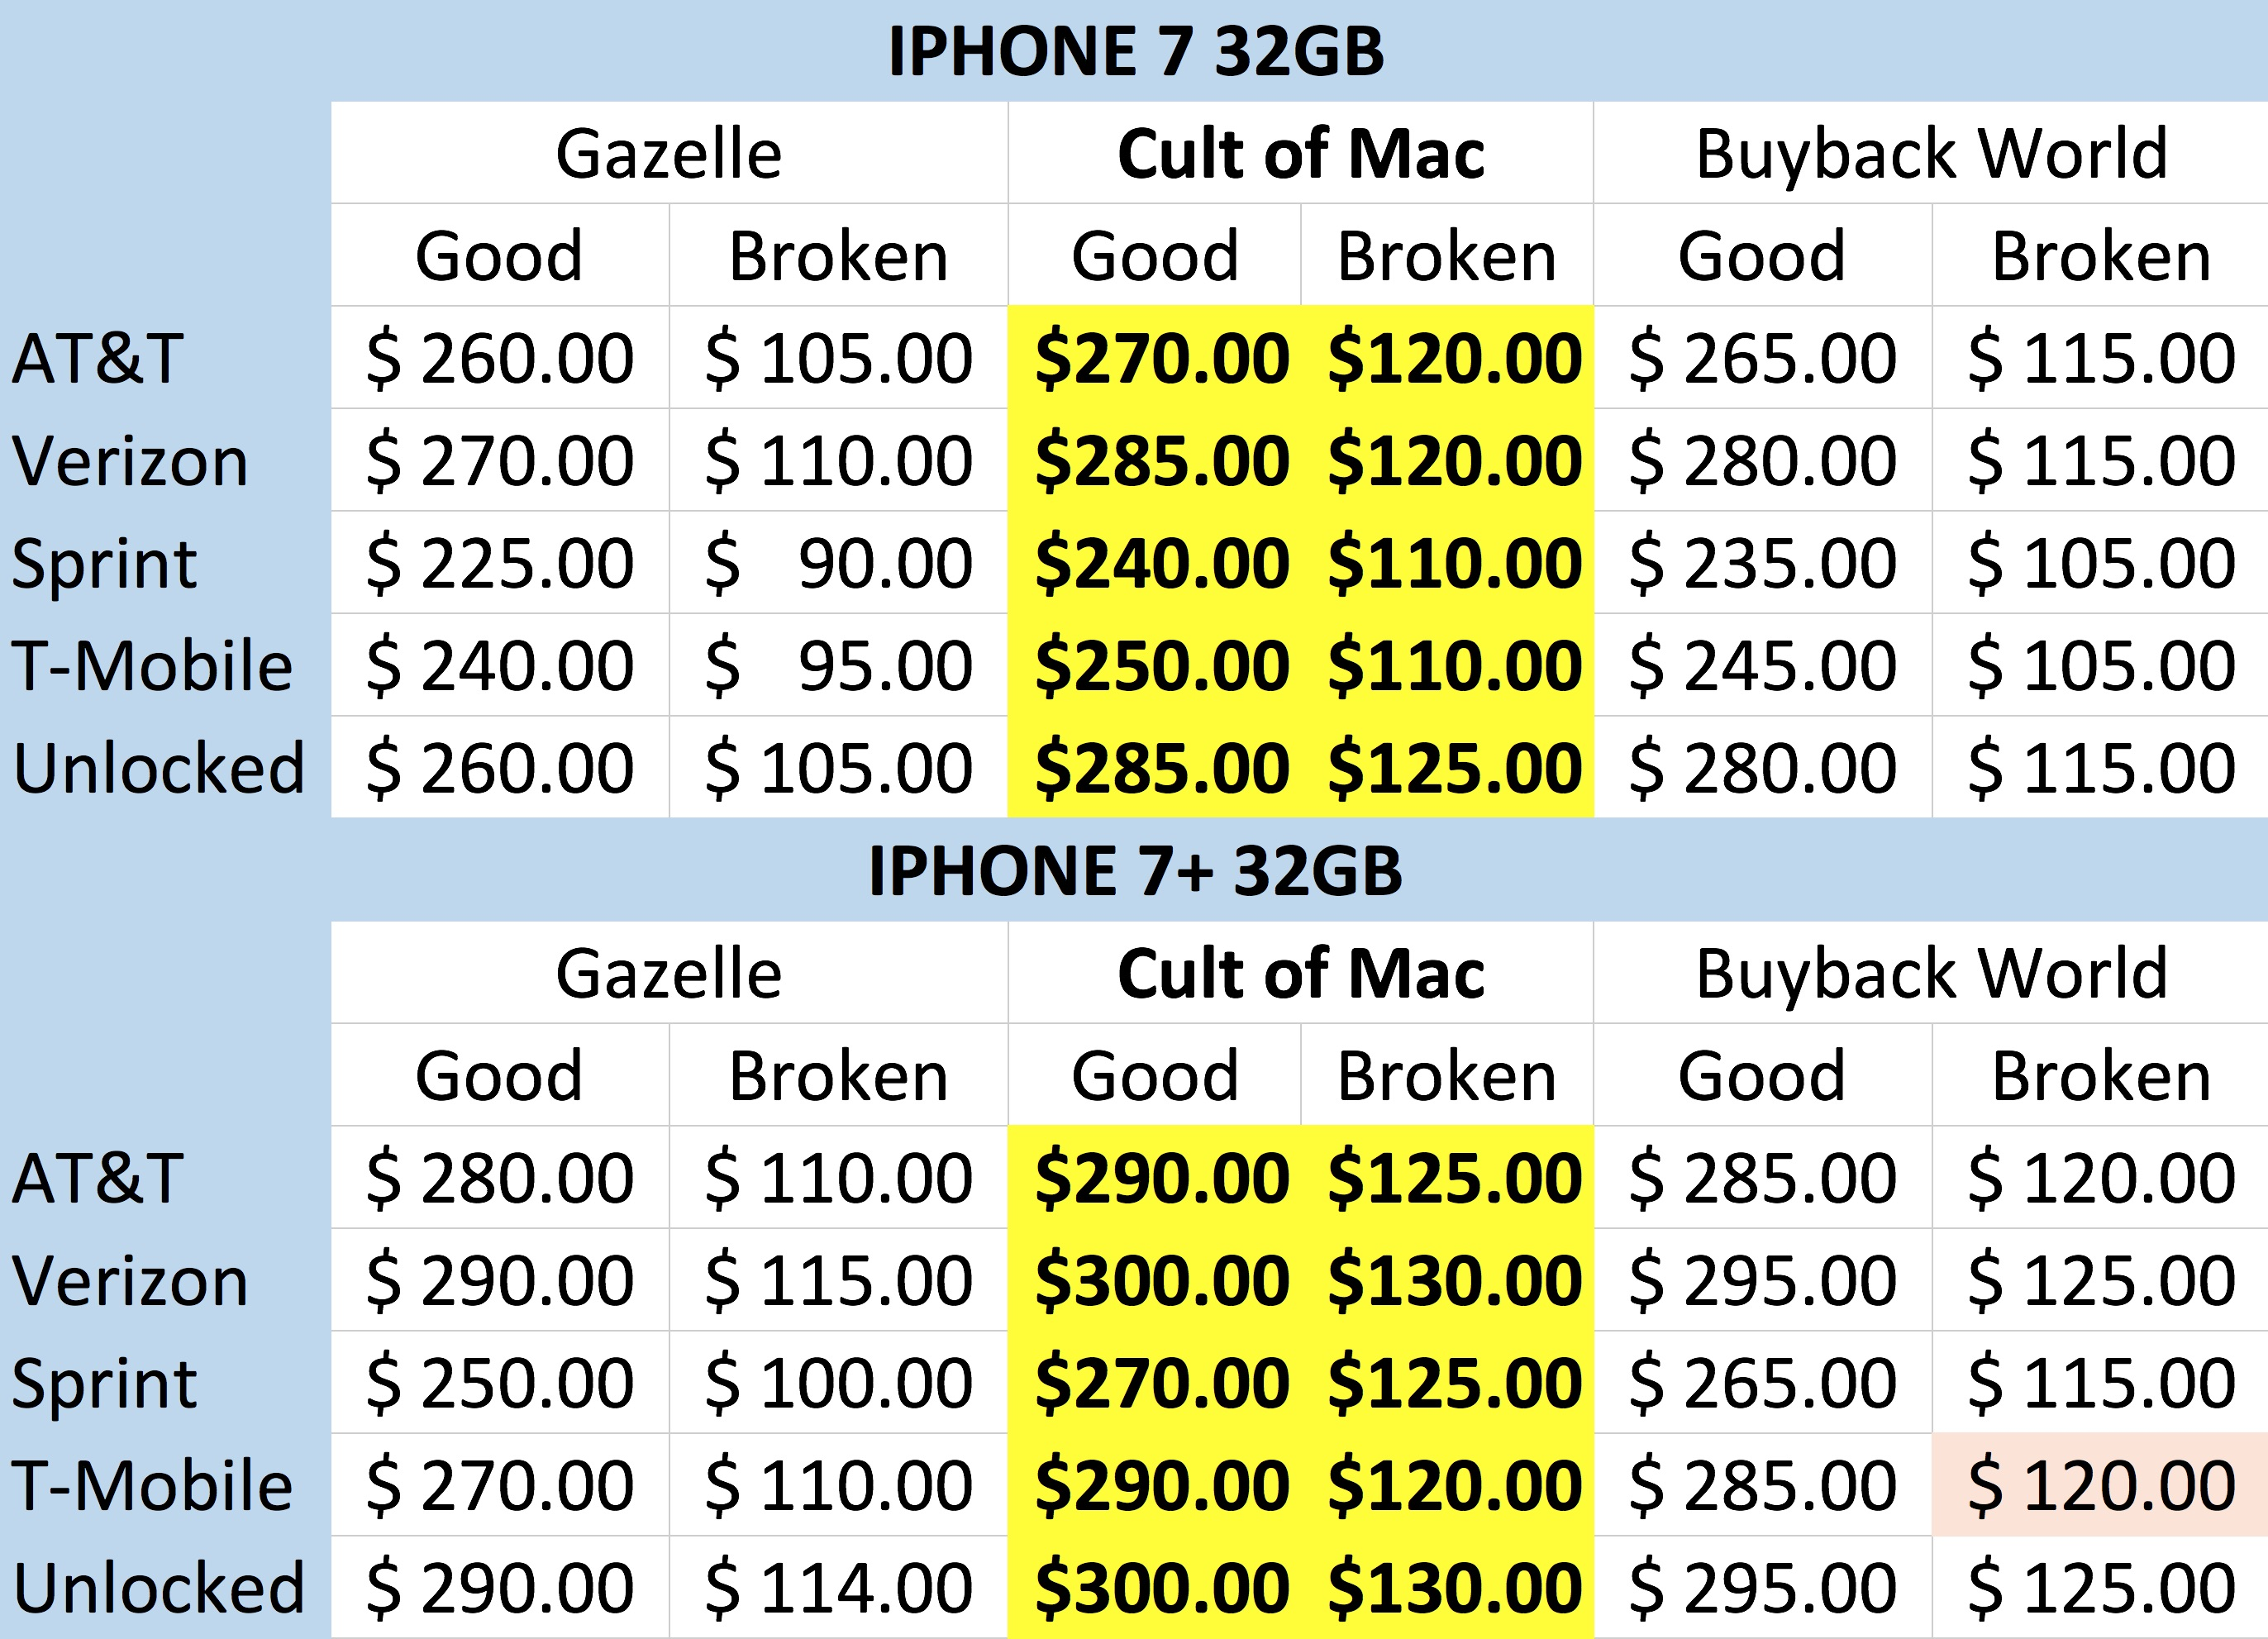 iPhone buyback comparison prices